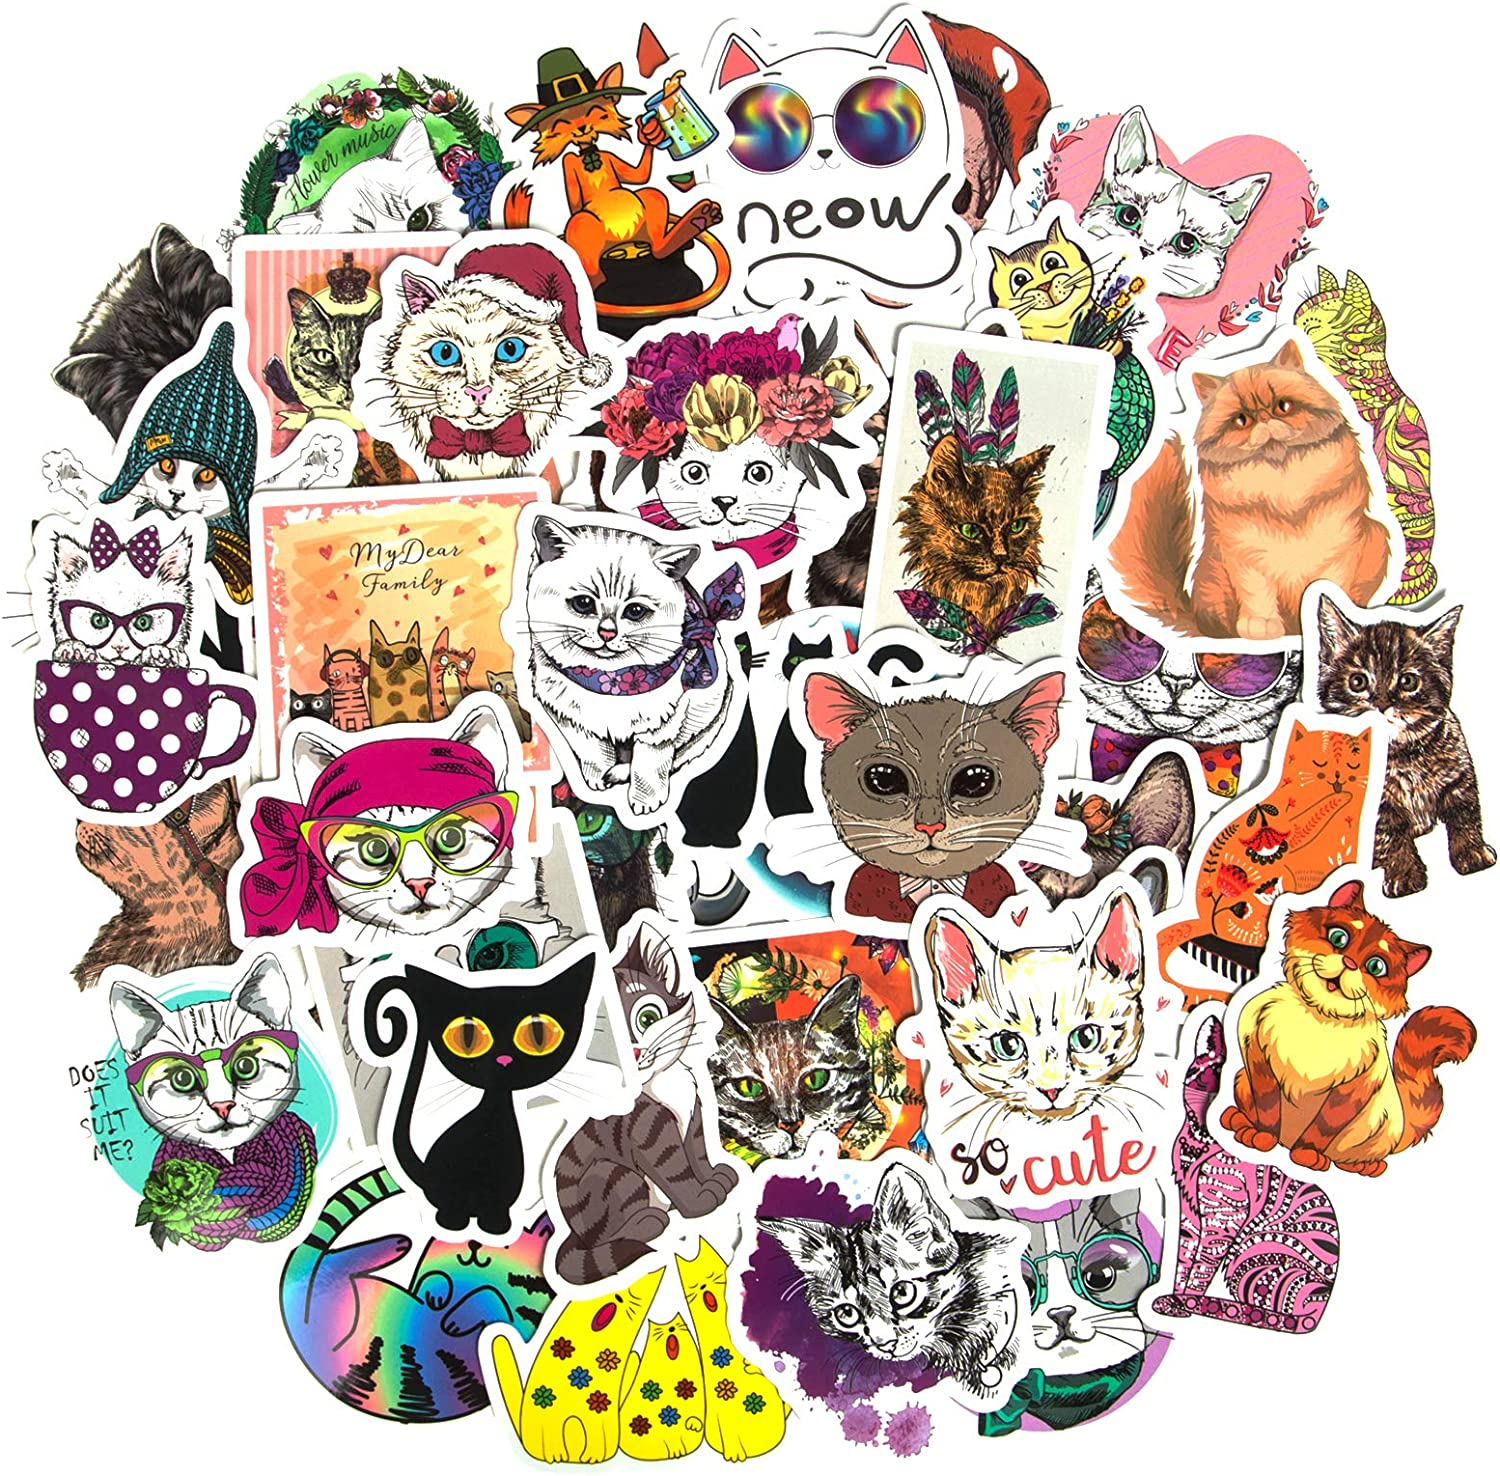 Cute Cat Stickers, Vinyl Stickers for Teens Animal Stickers for Water Bottles Skateboard Stickers for Laptop Luggage Computer Phone Guitar Graffiti Sticker Pack Decals